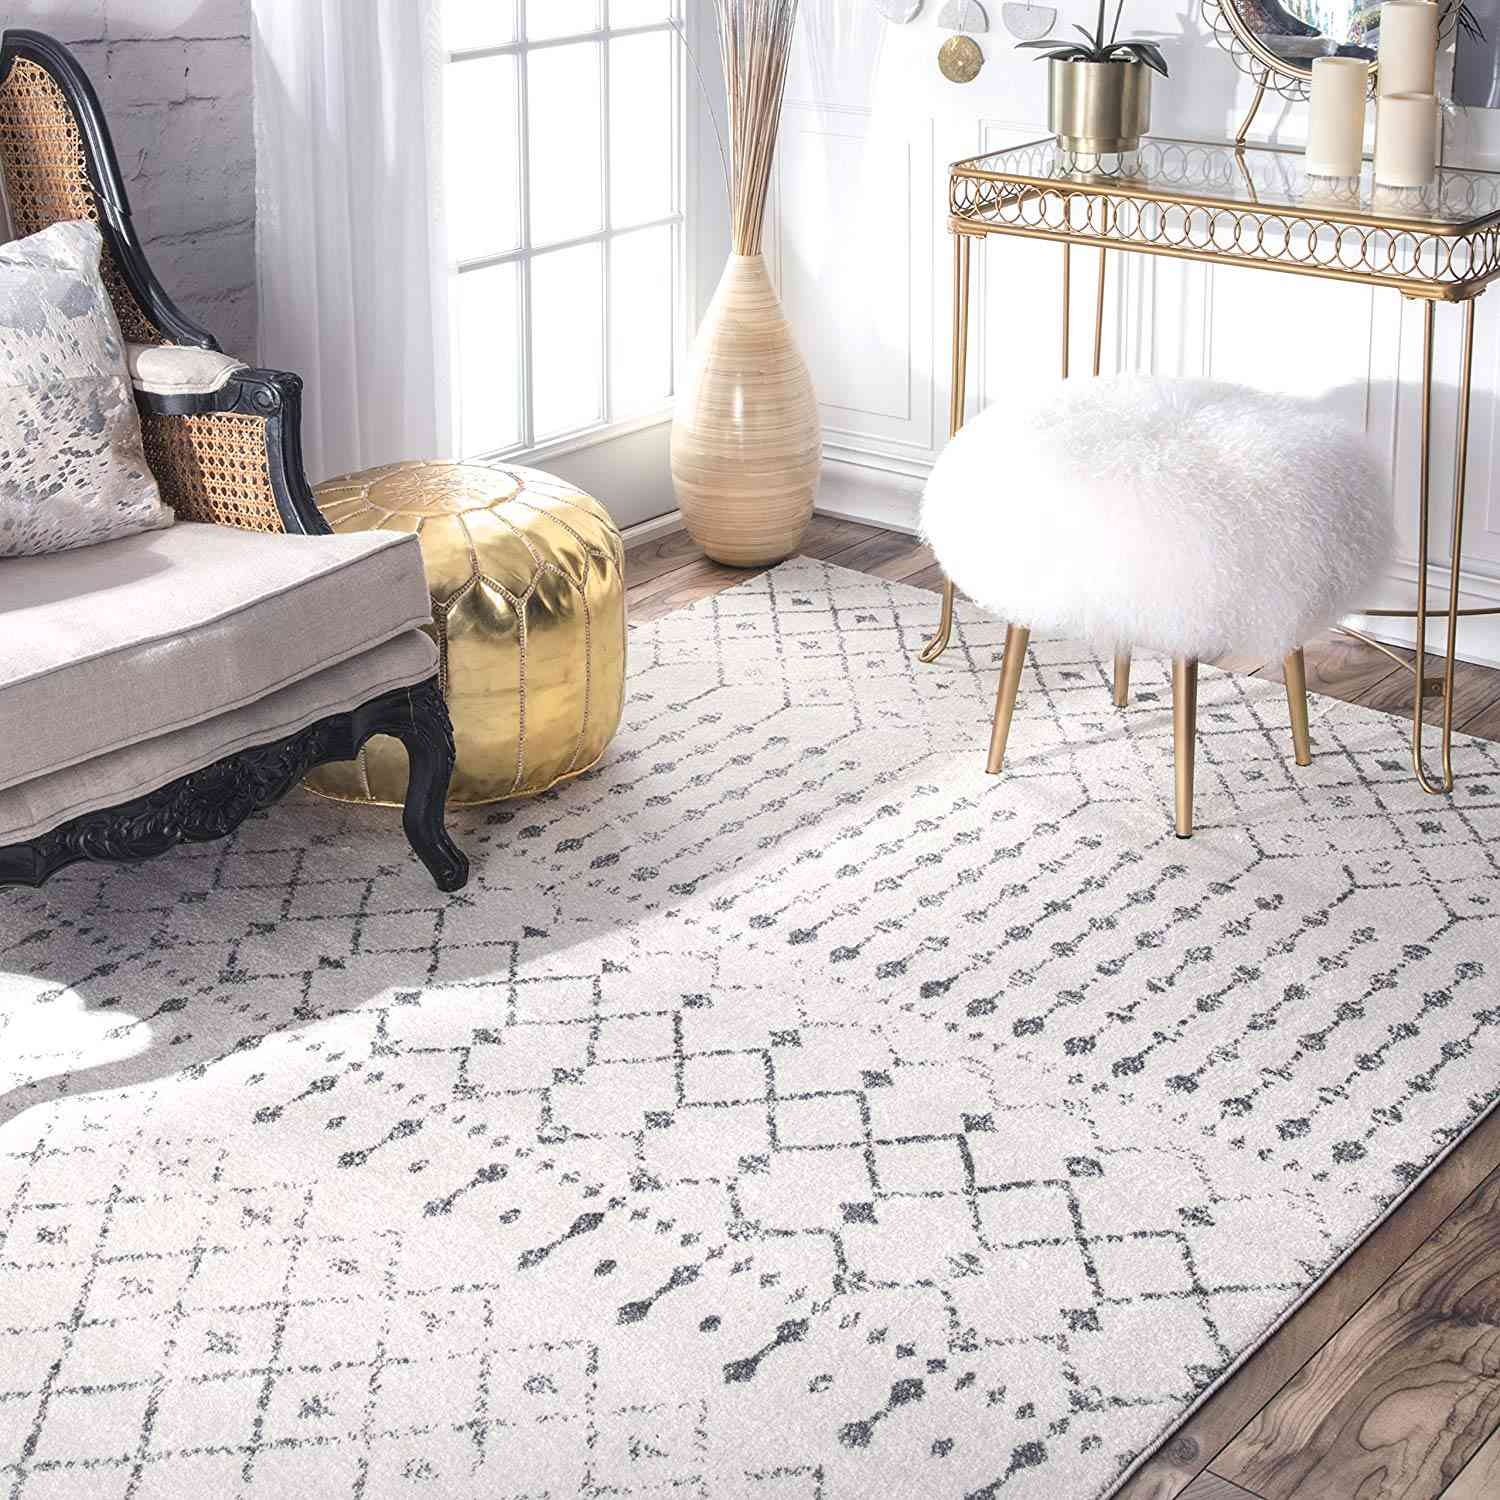 White and gray rug